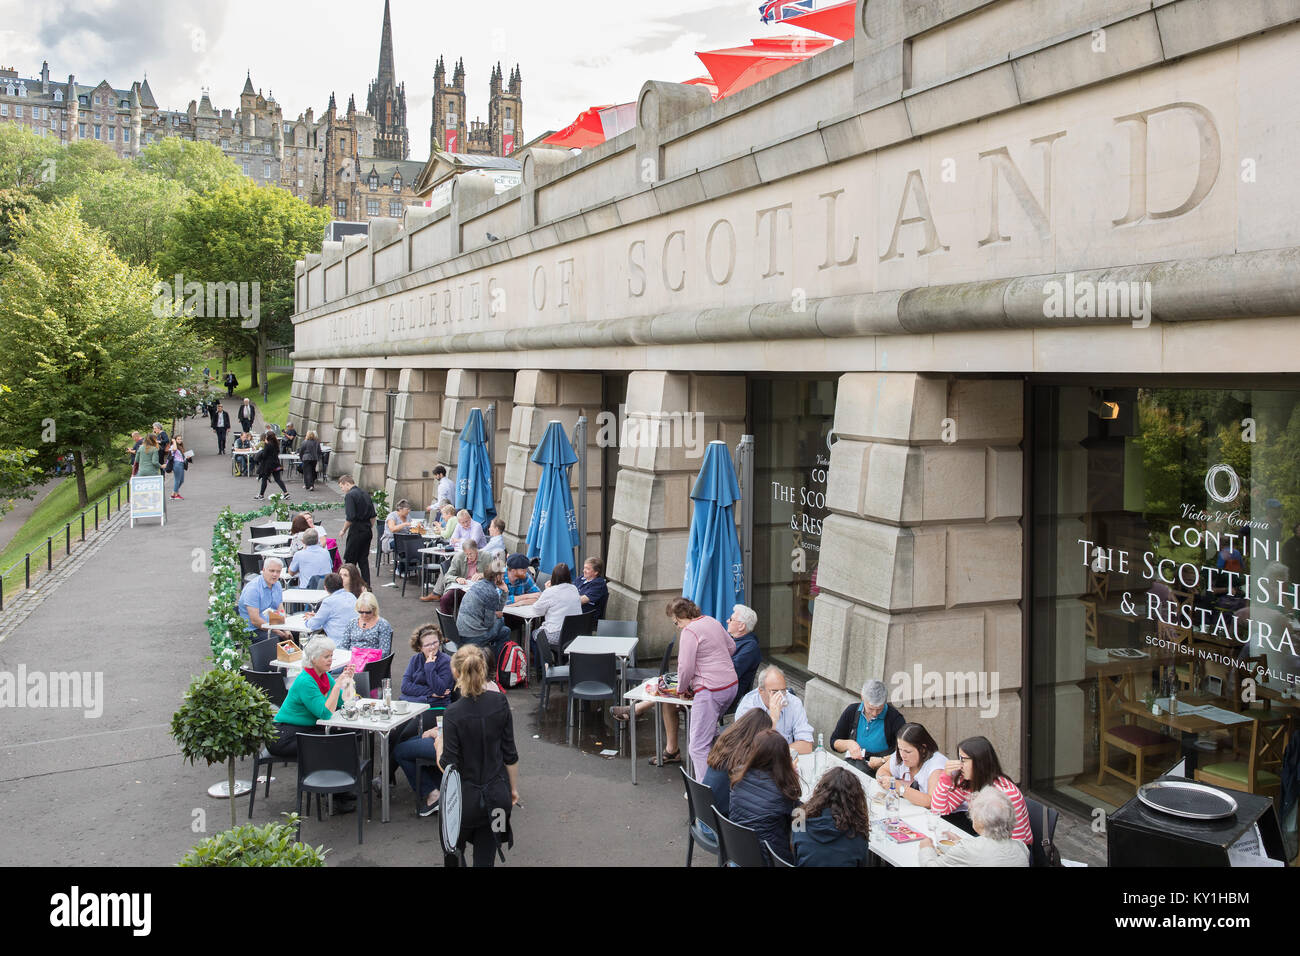 The National Galleries of Scotland cafe, Edinburgh, Scotland - Stock Image